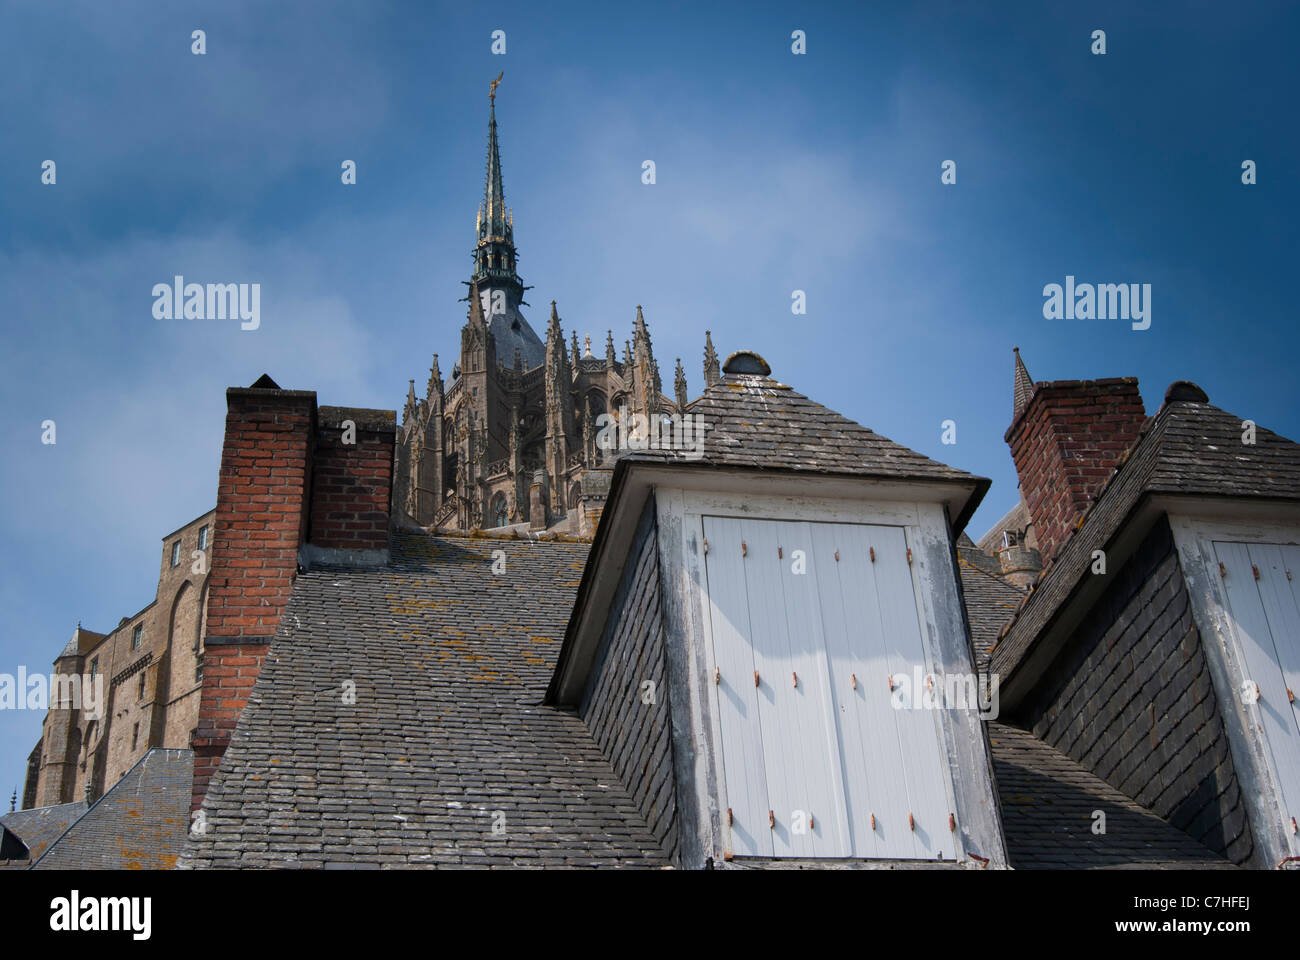 Roof Tops With Lichen Covered Slates And White Shutters